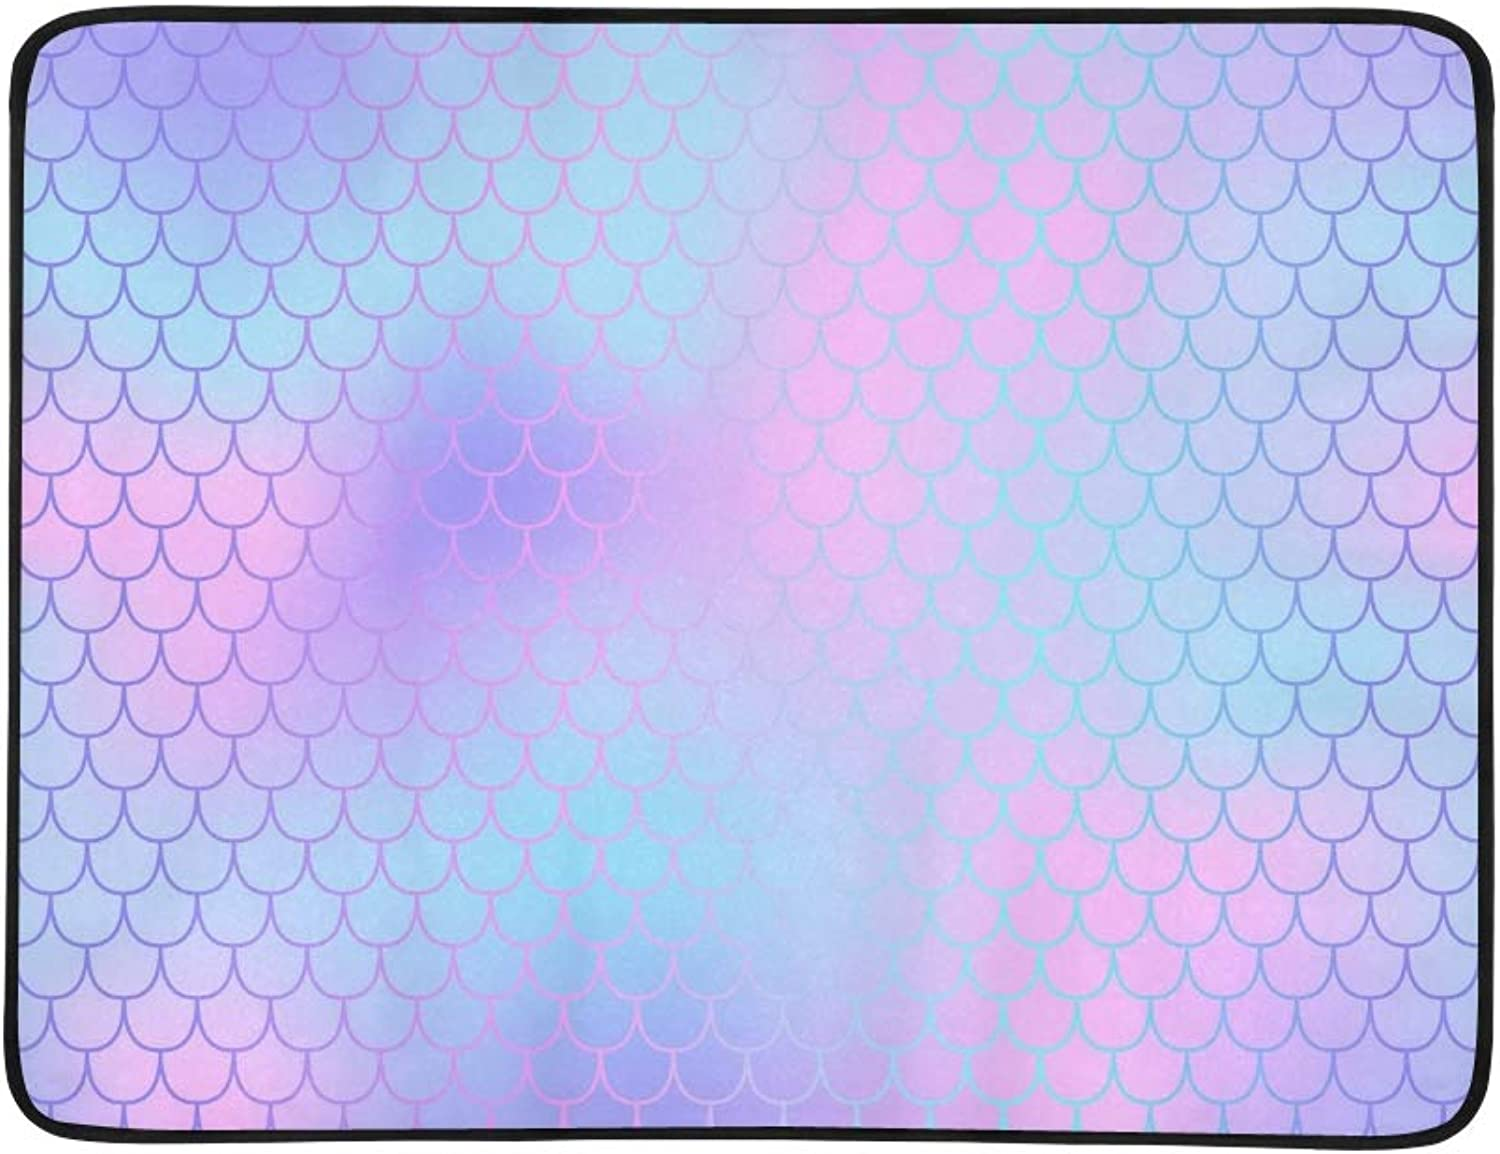 Pink purple Fish Skin Scale Portable and Foldable Blanket Mat 60x78 Inch Handy Mat for Camping Picnic Beach Indoor Outdoor Travel